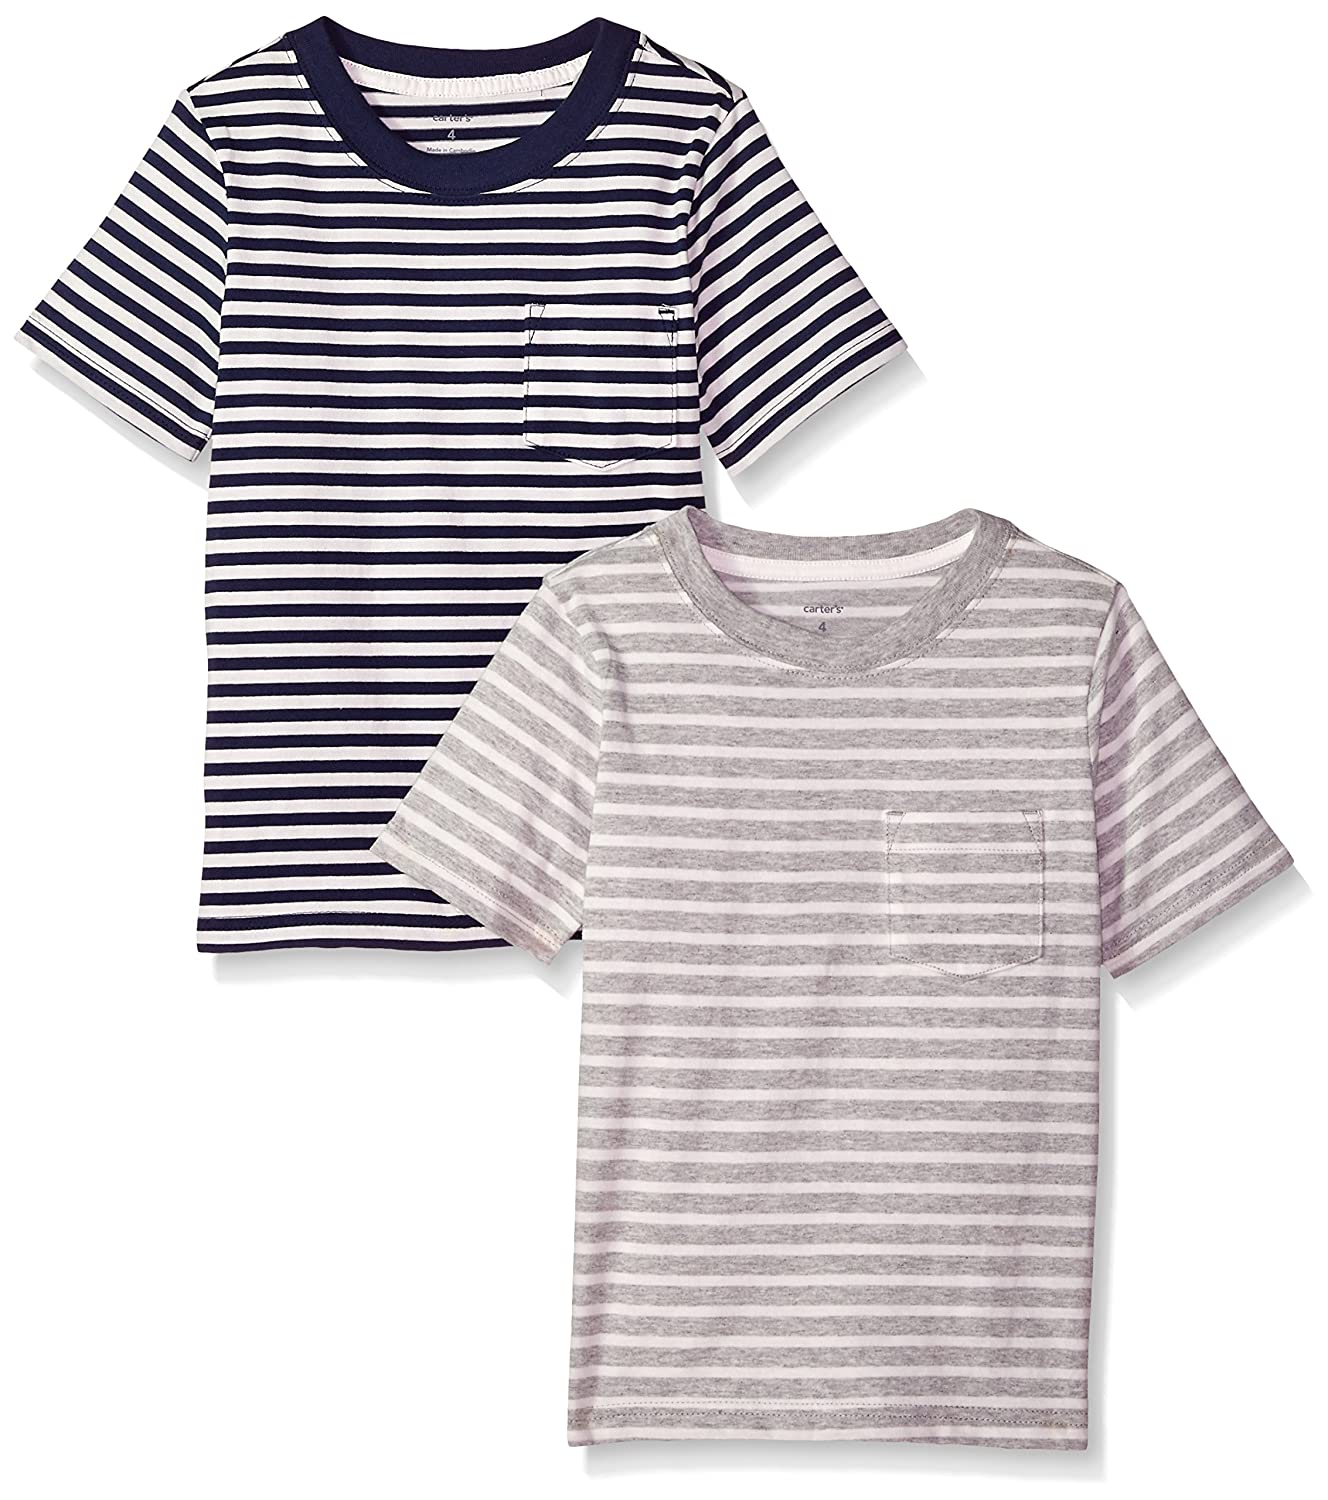 Carter's Boys' 2-Pack Tee Carter's